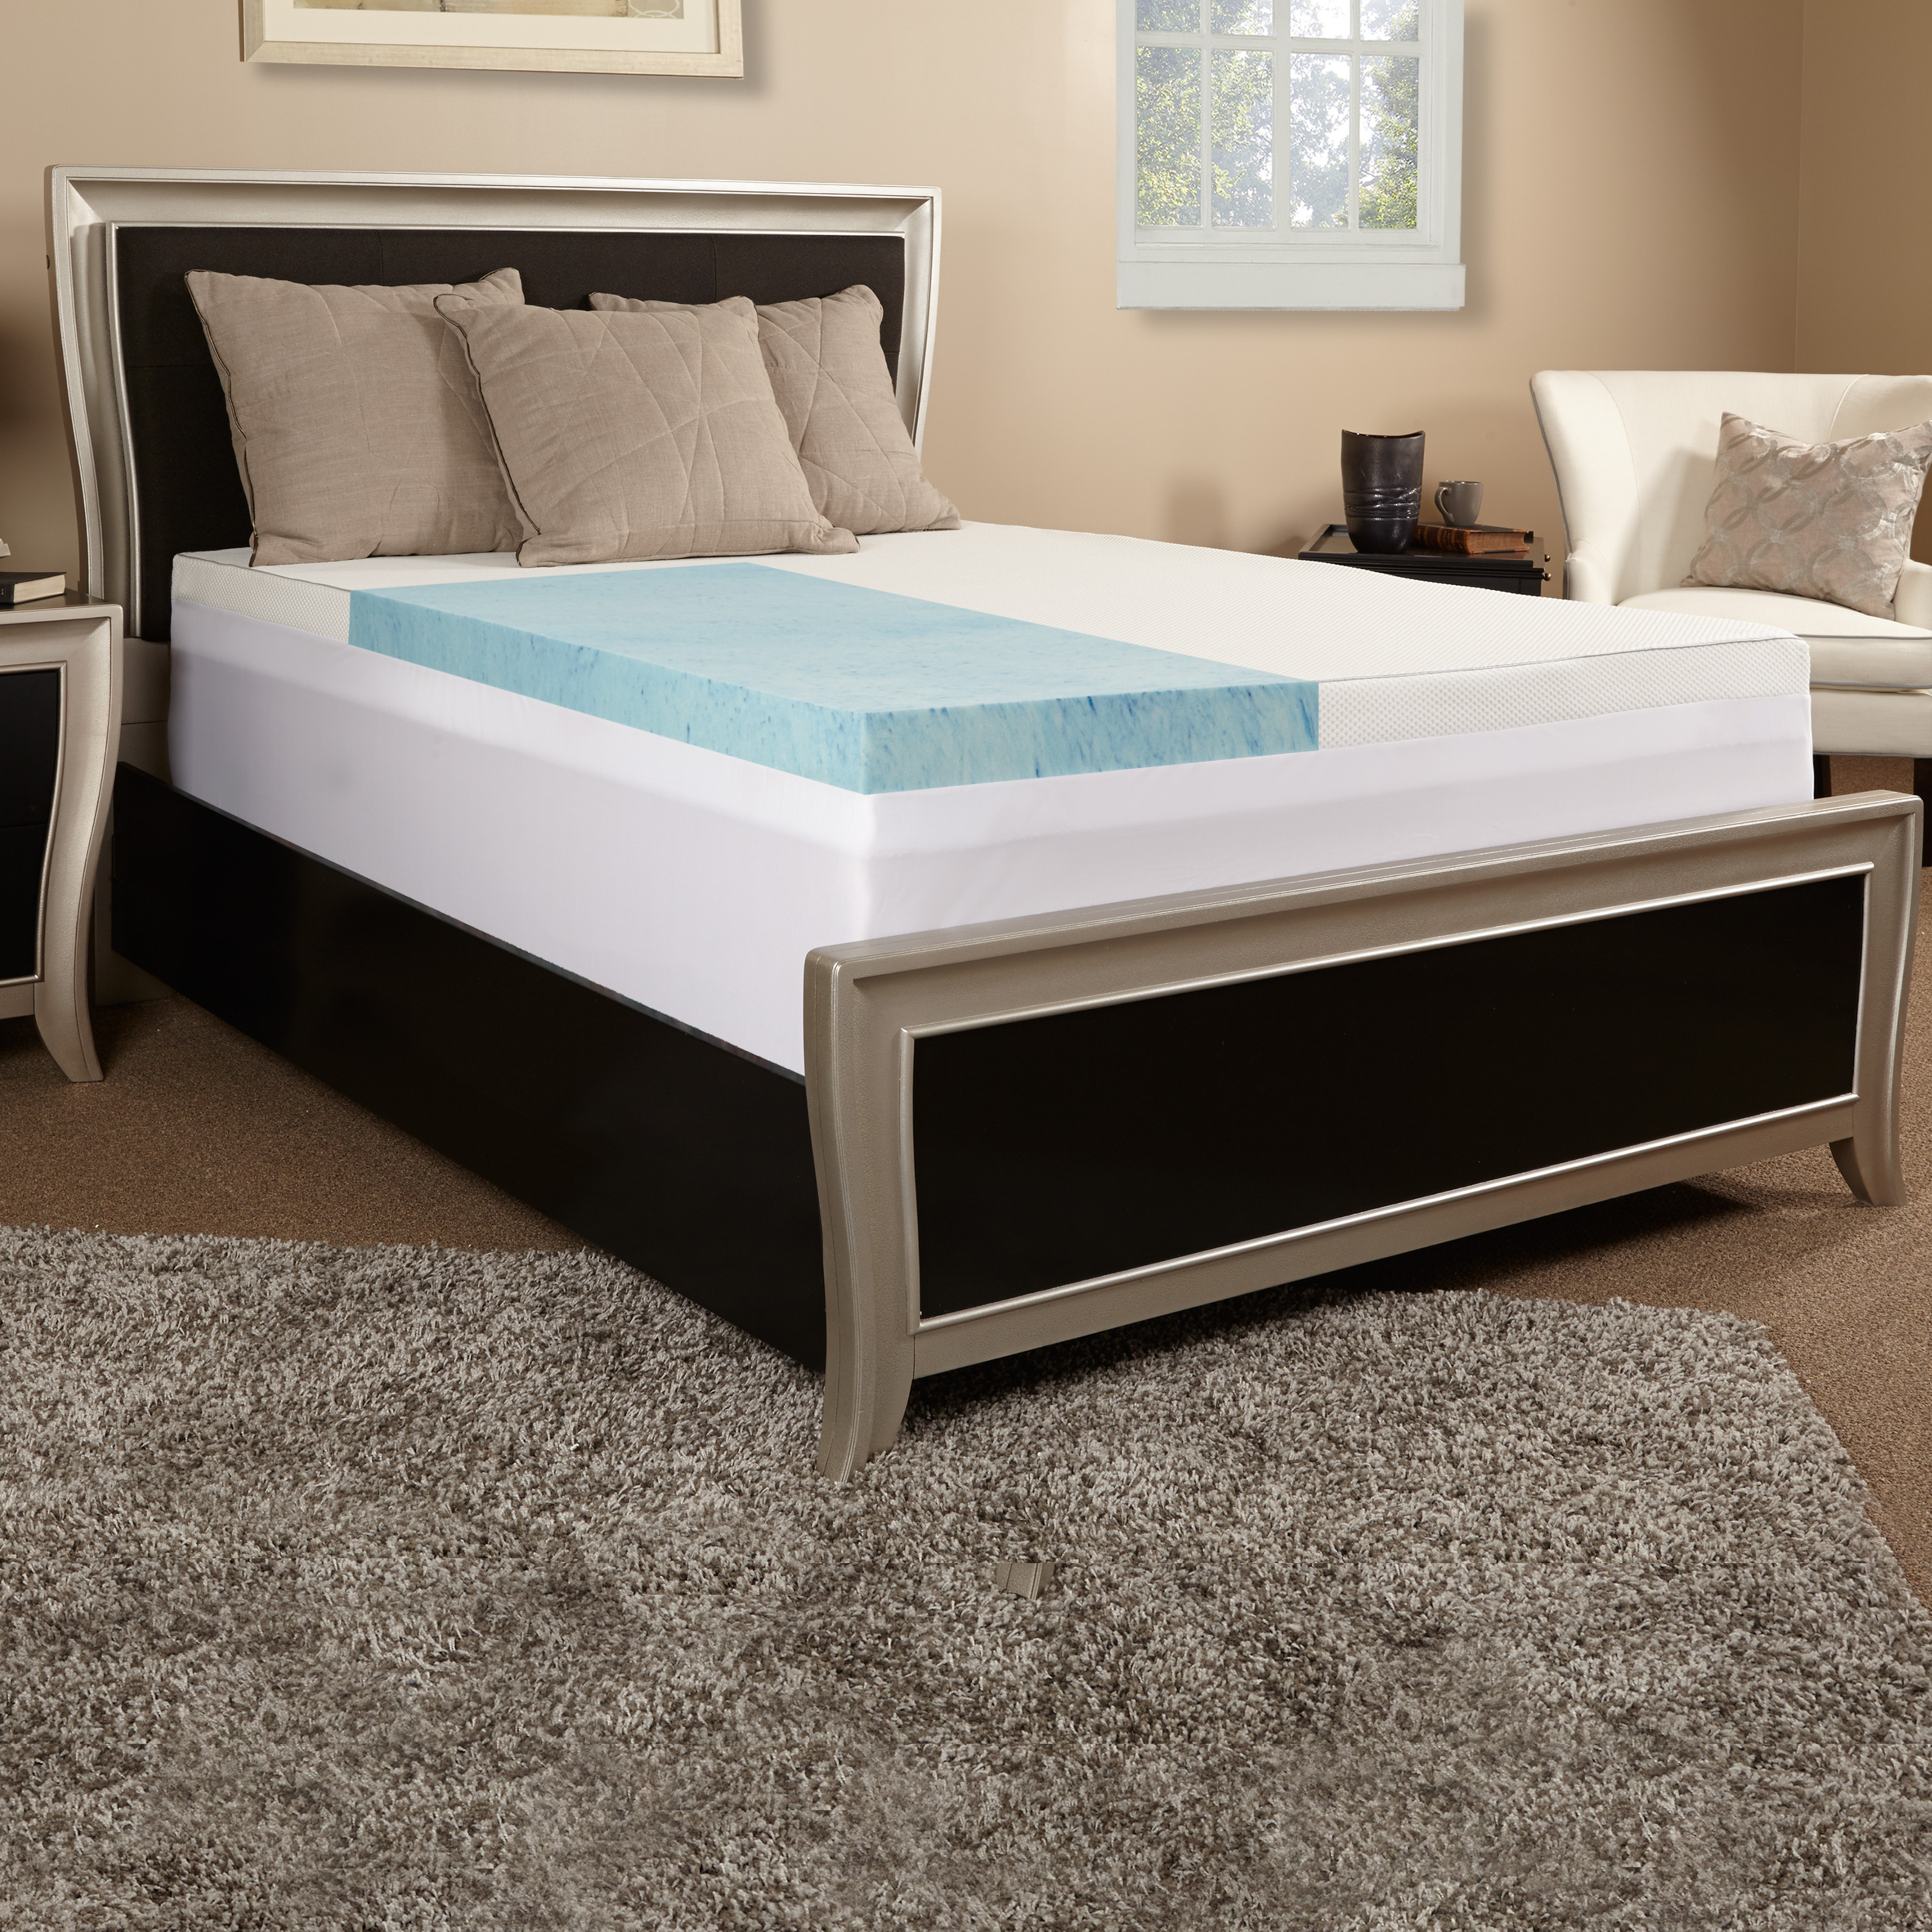 topper alternative over mattress bath cheer fiber down product overstock bed shipping collection orders on free bedding